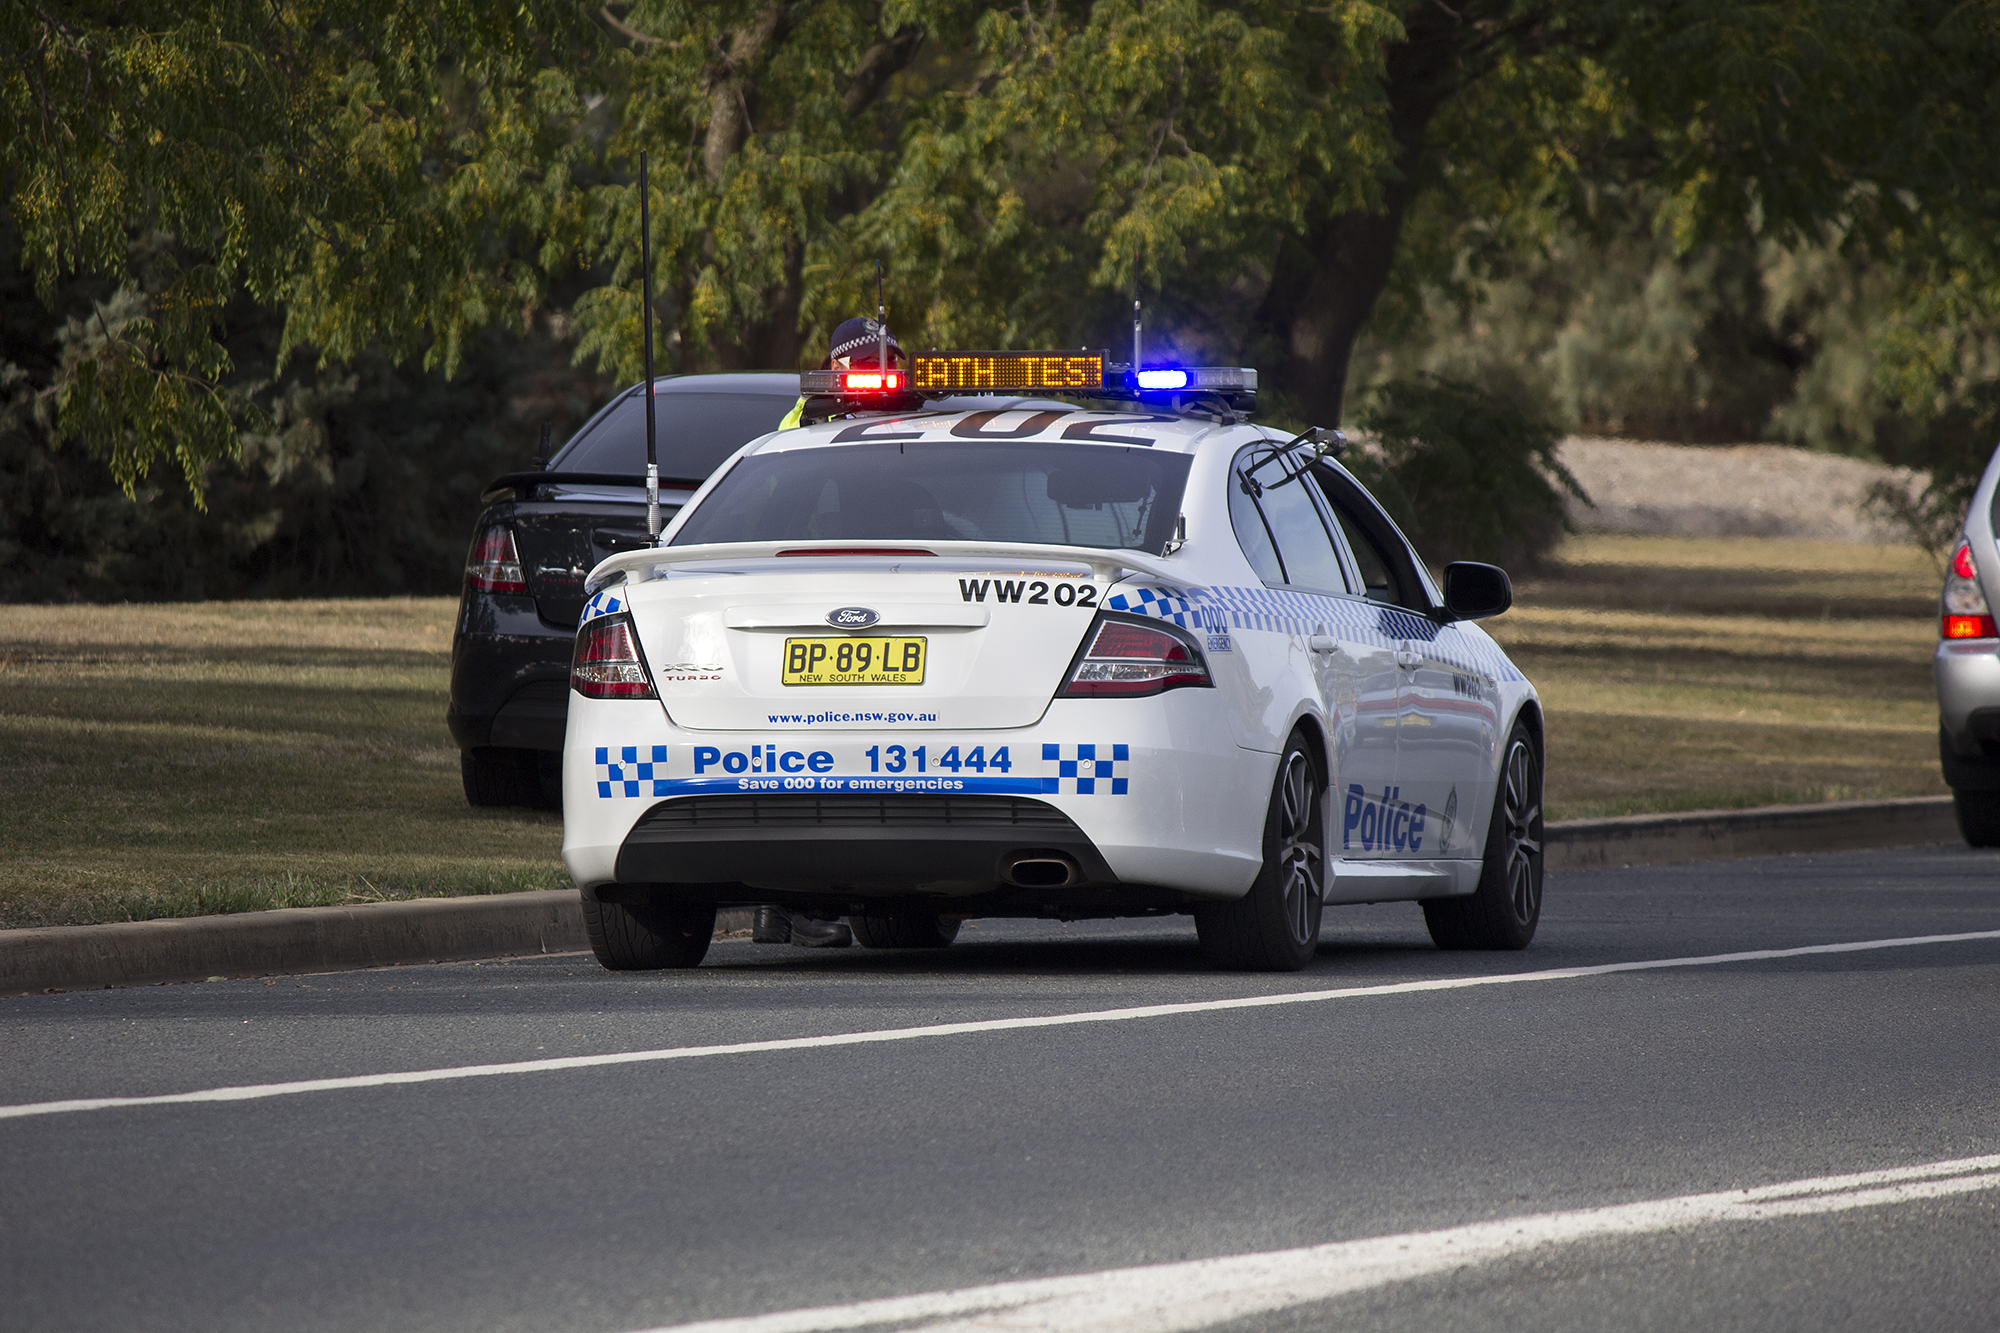 Chp accident reports by date in Perth